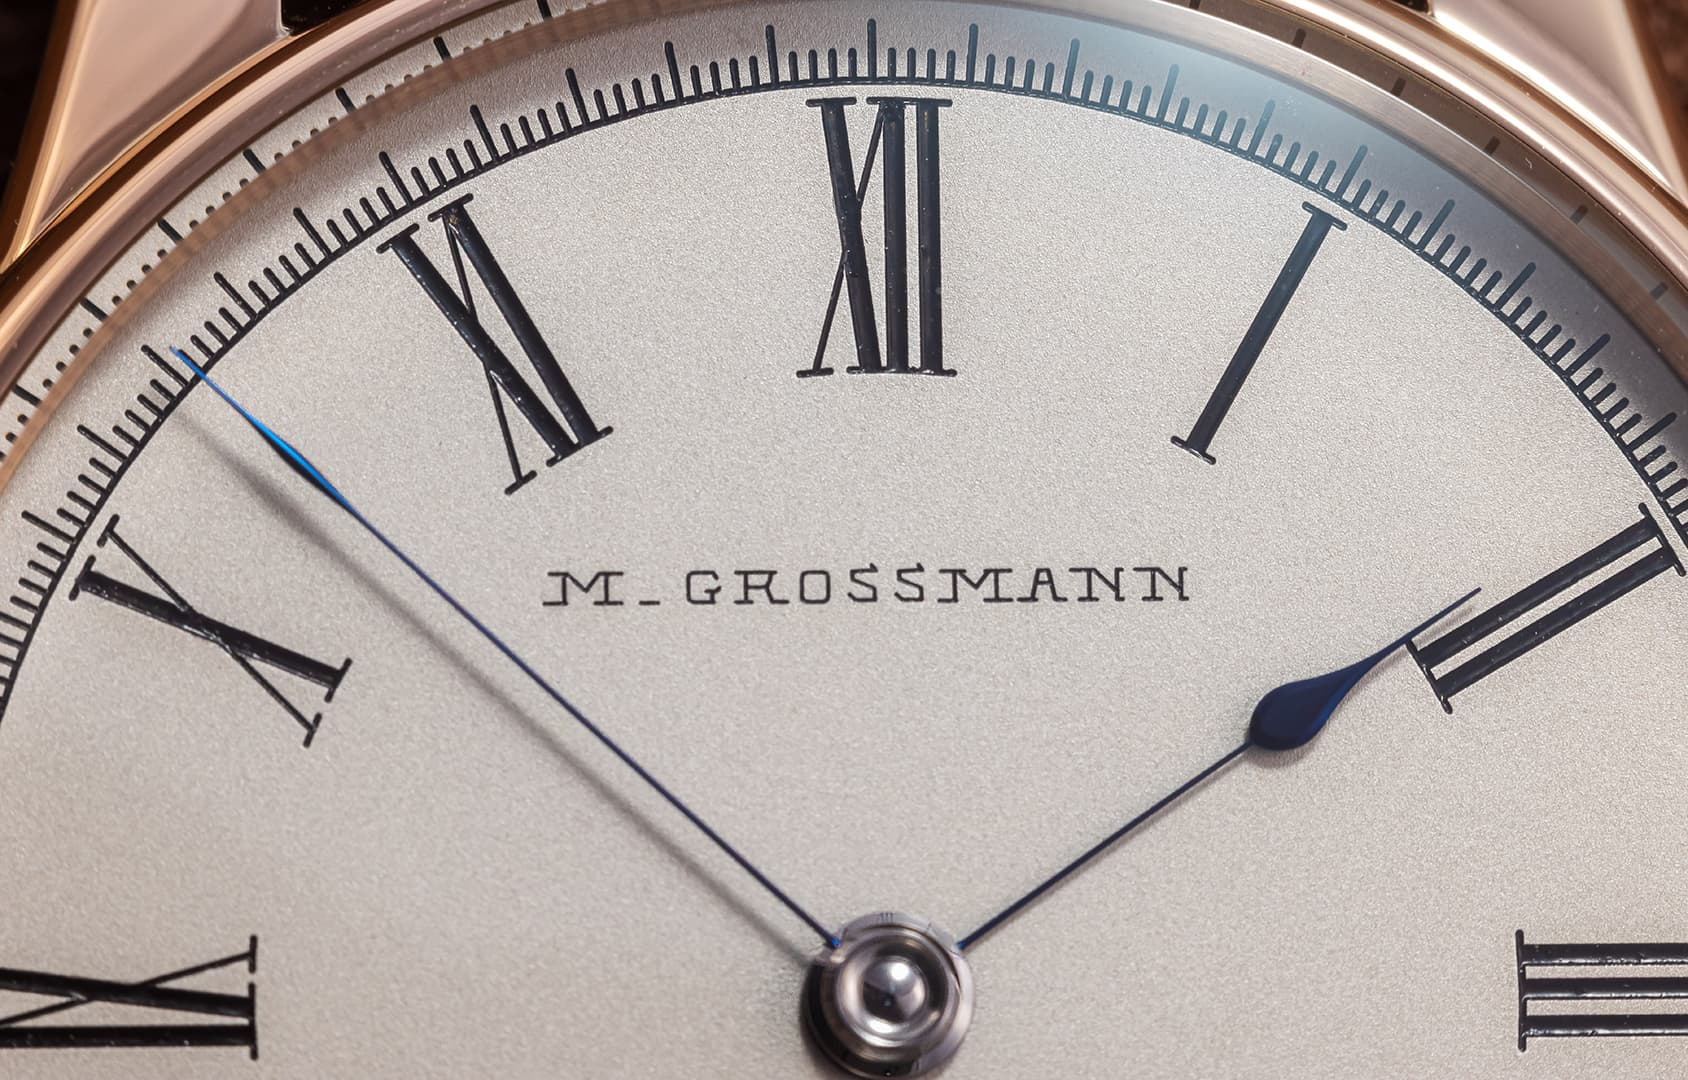 Zifferblatts der Moritz Grossmann XII Birthday-Edition